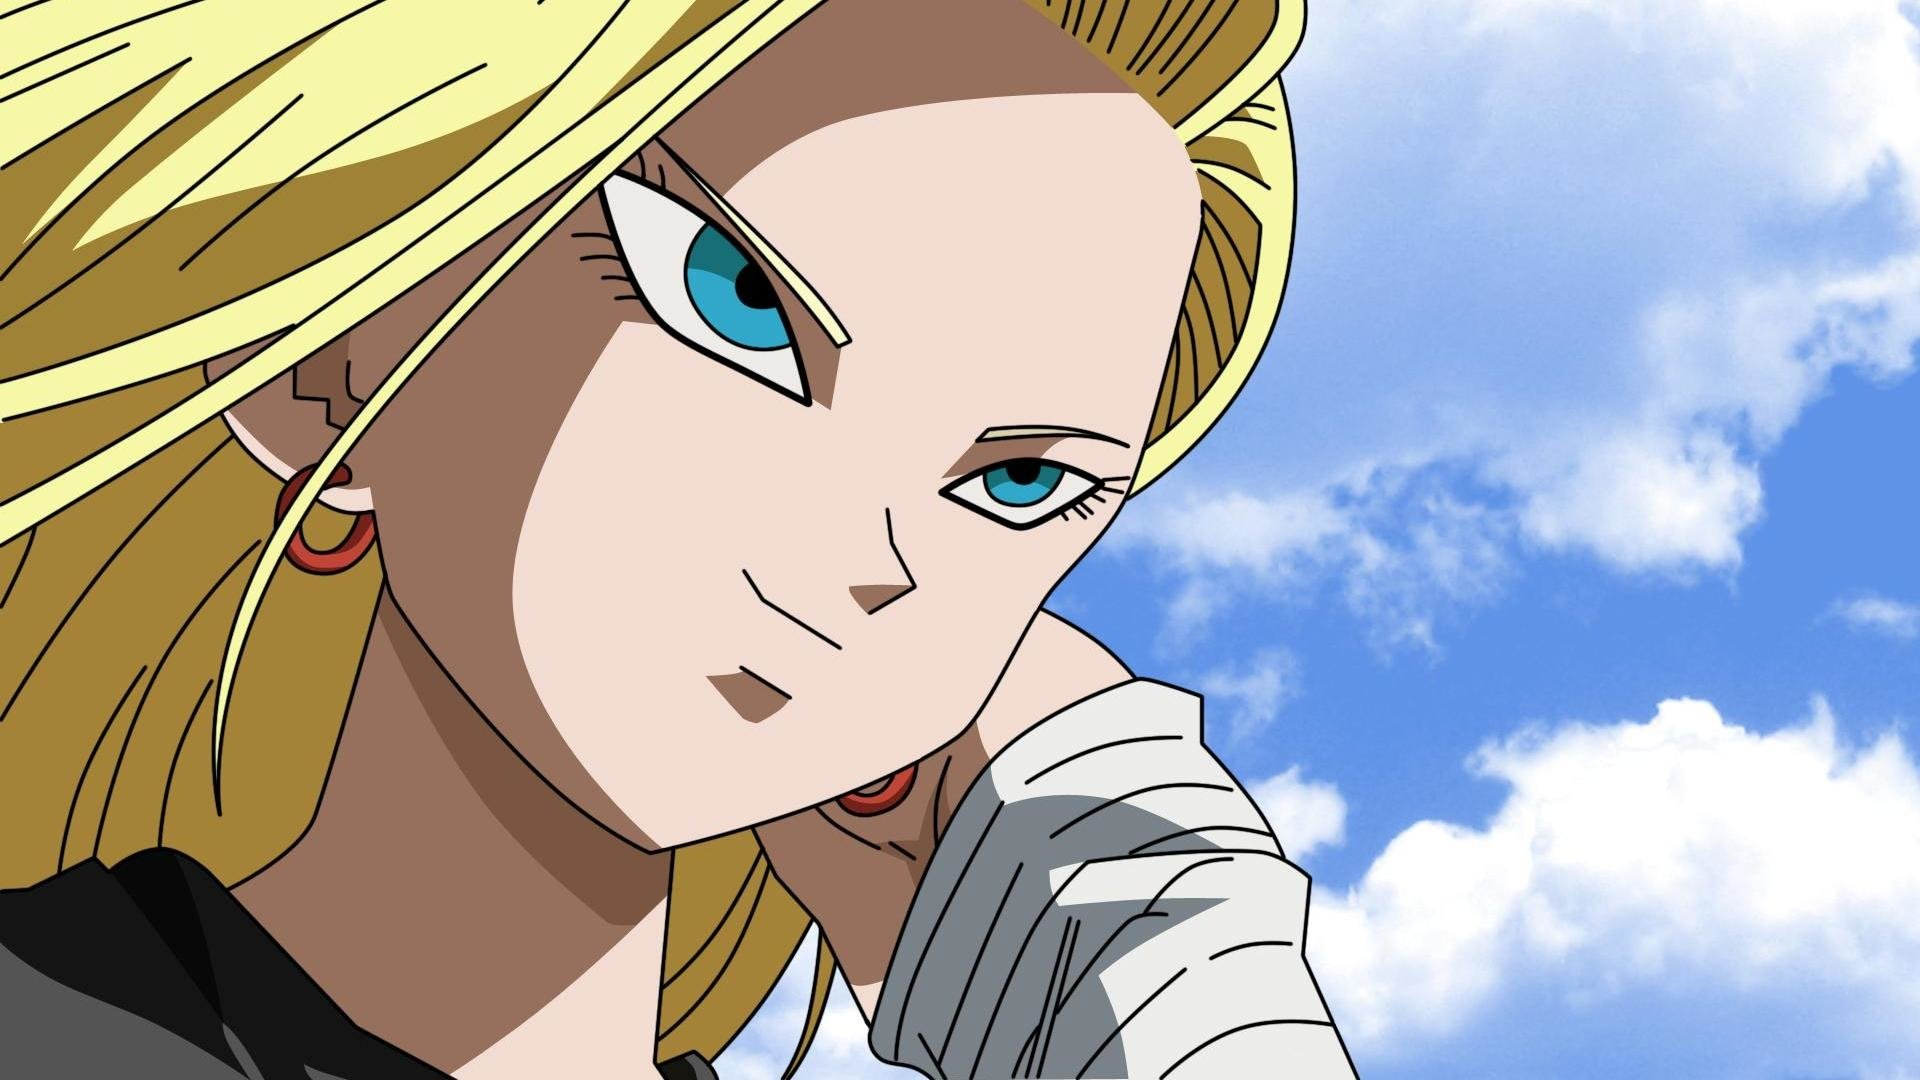 Android 18 hd wallpaper background image 1920x1080 - Android wallpaper reddit ...